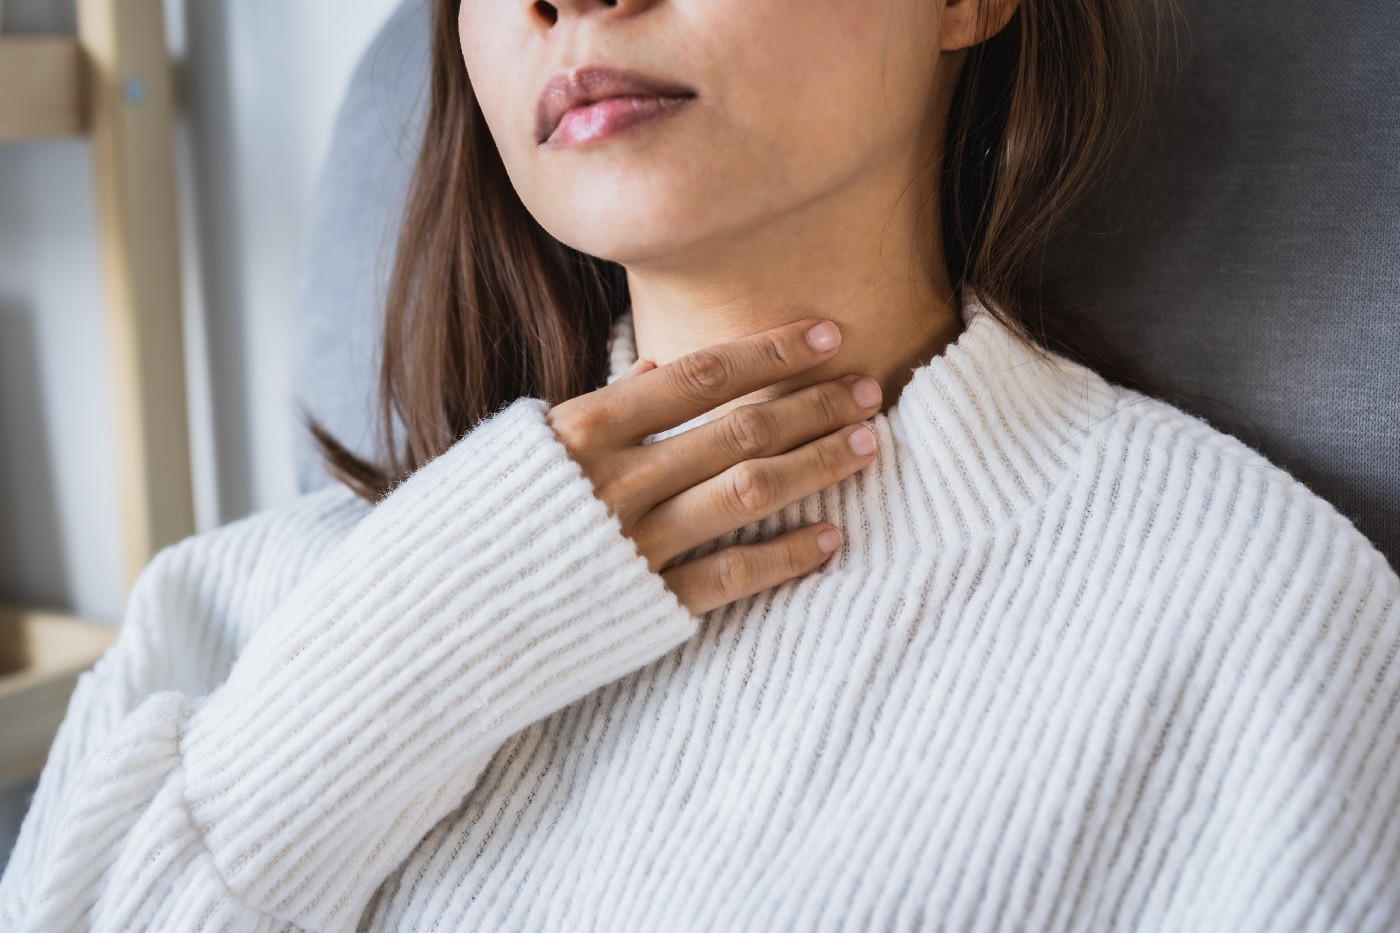 Photo of a woman putting her hand to her collarbone